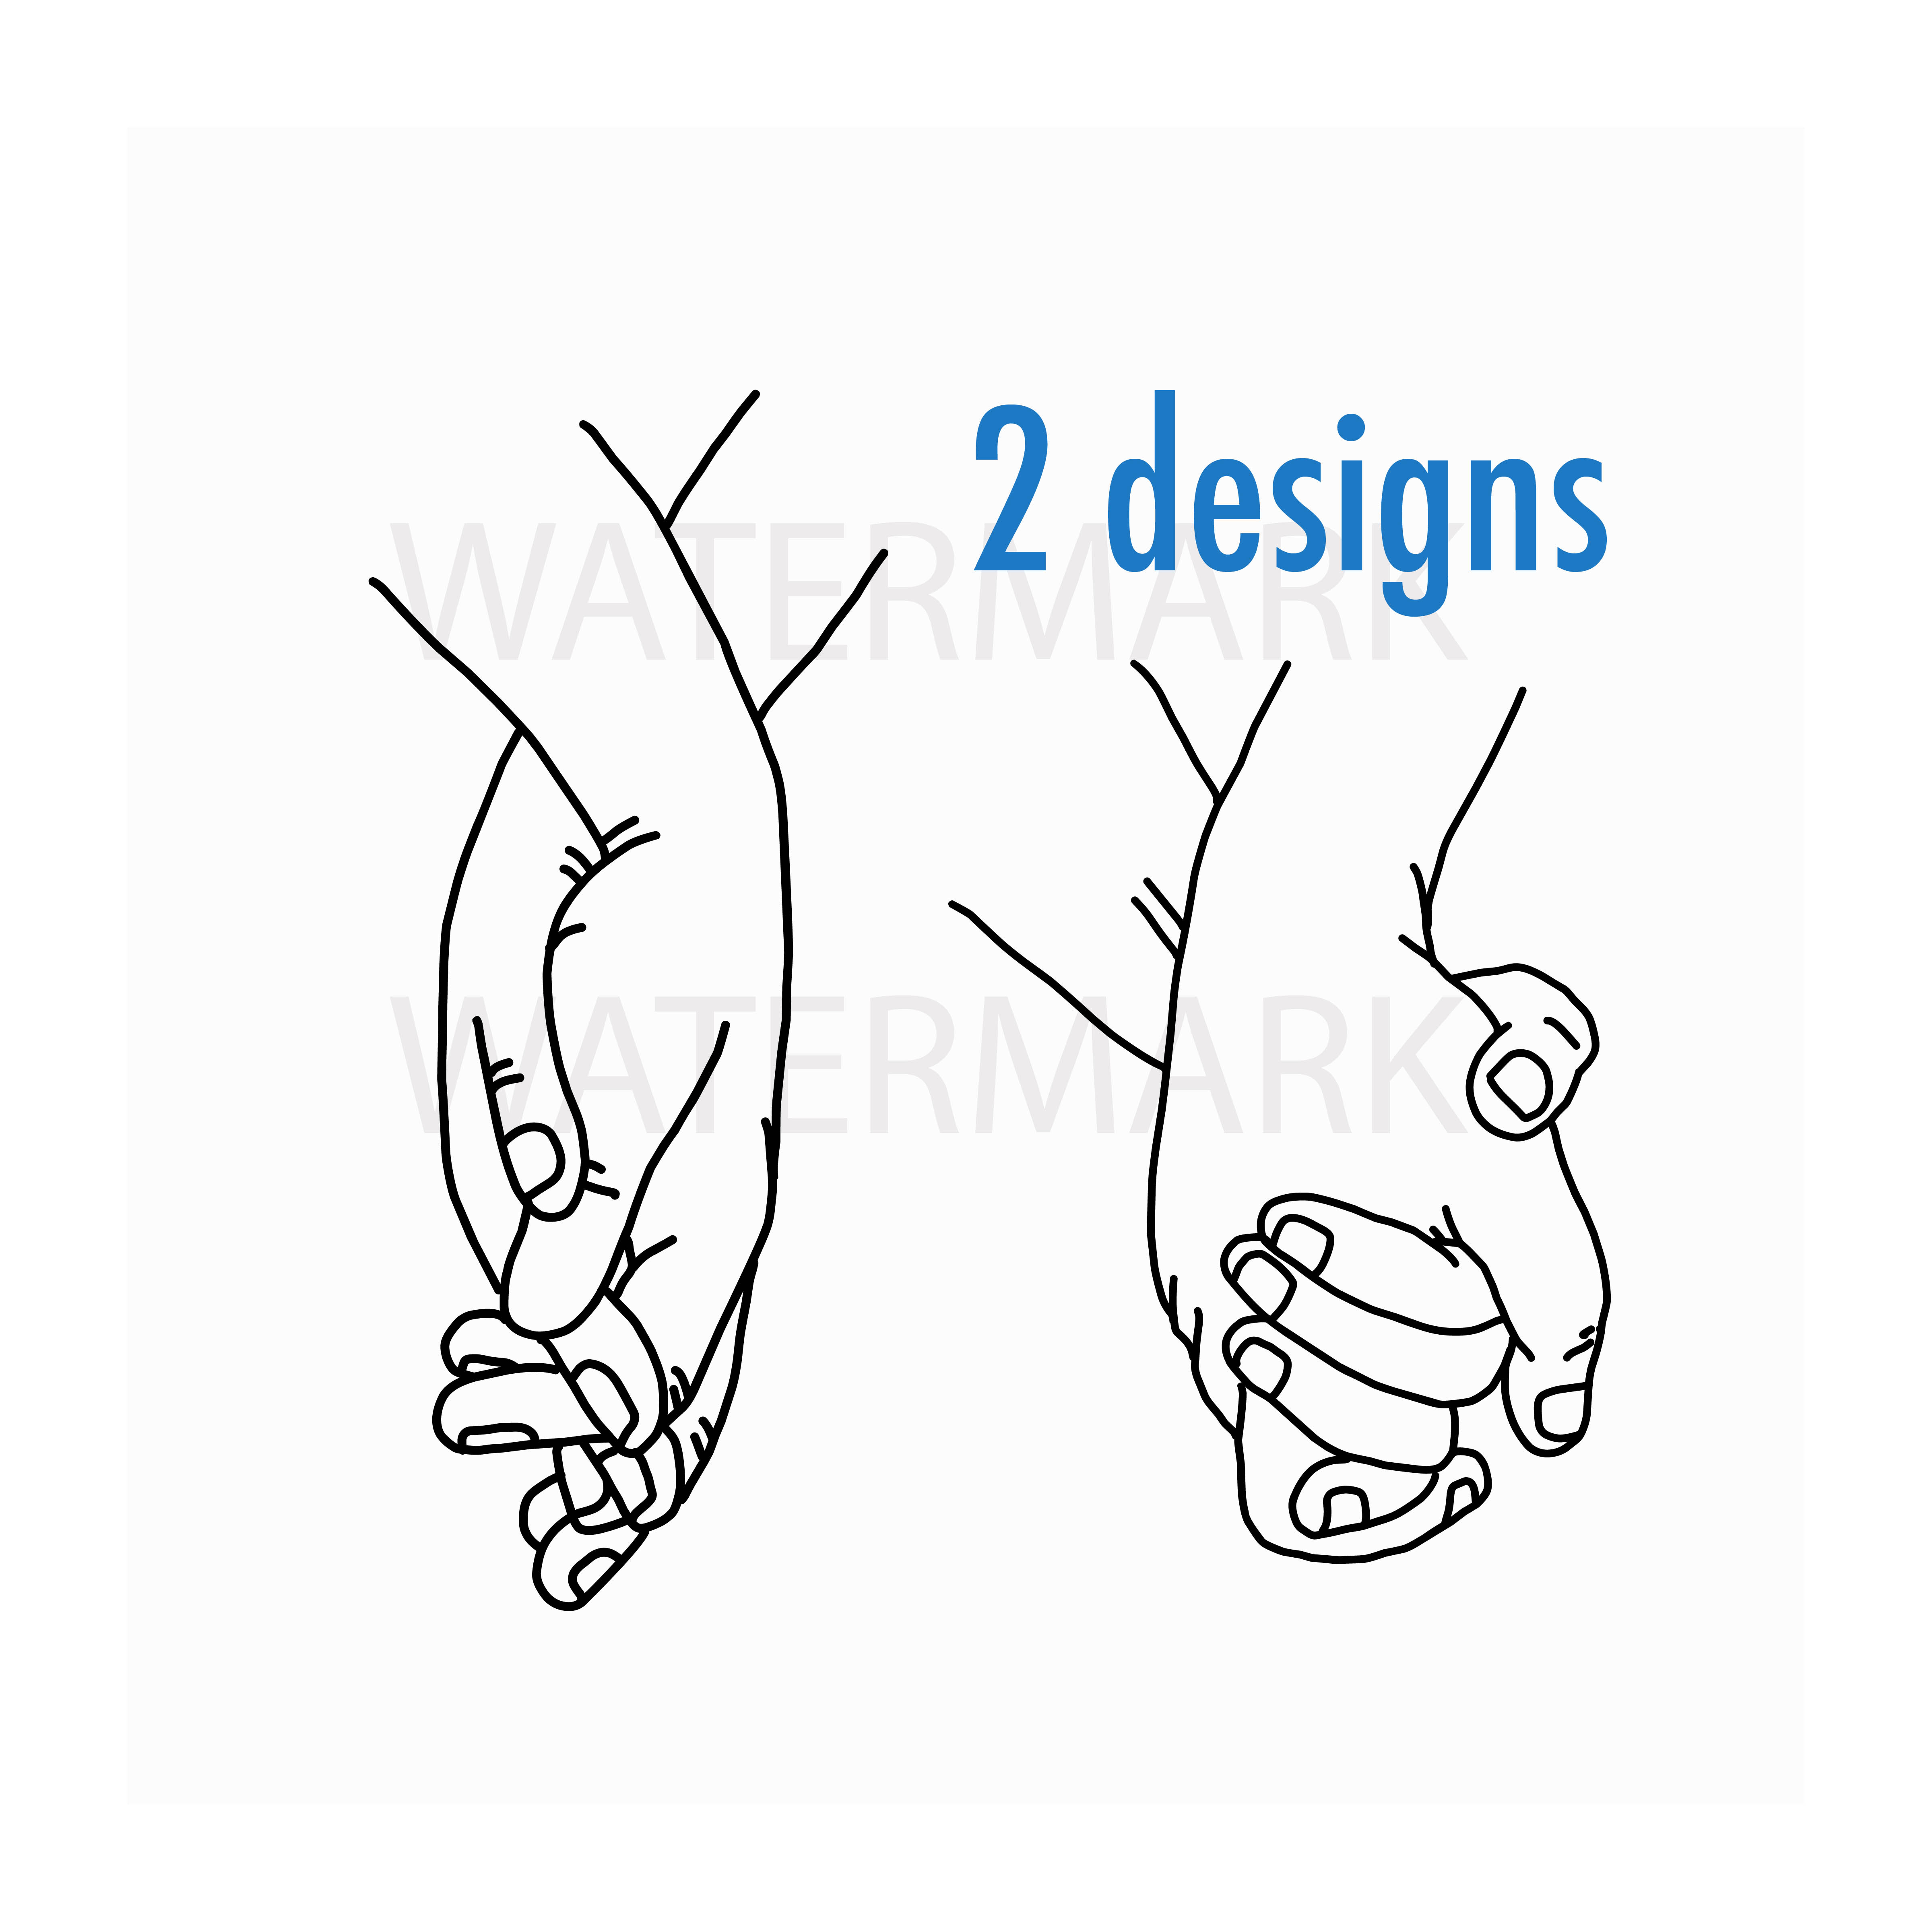 Holding Hand and walk along with love - SVG/JPG/PNG Hand Drawing example image 1